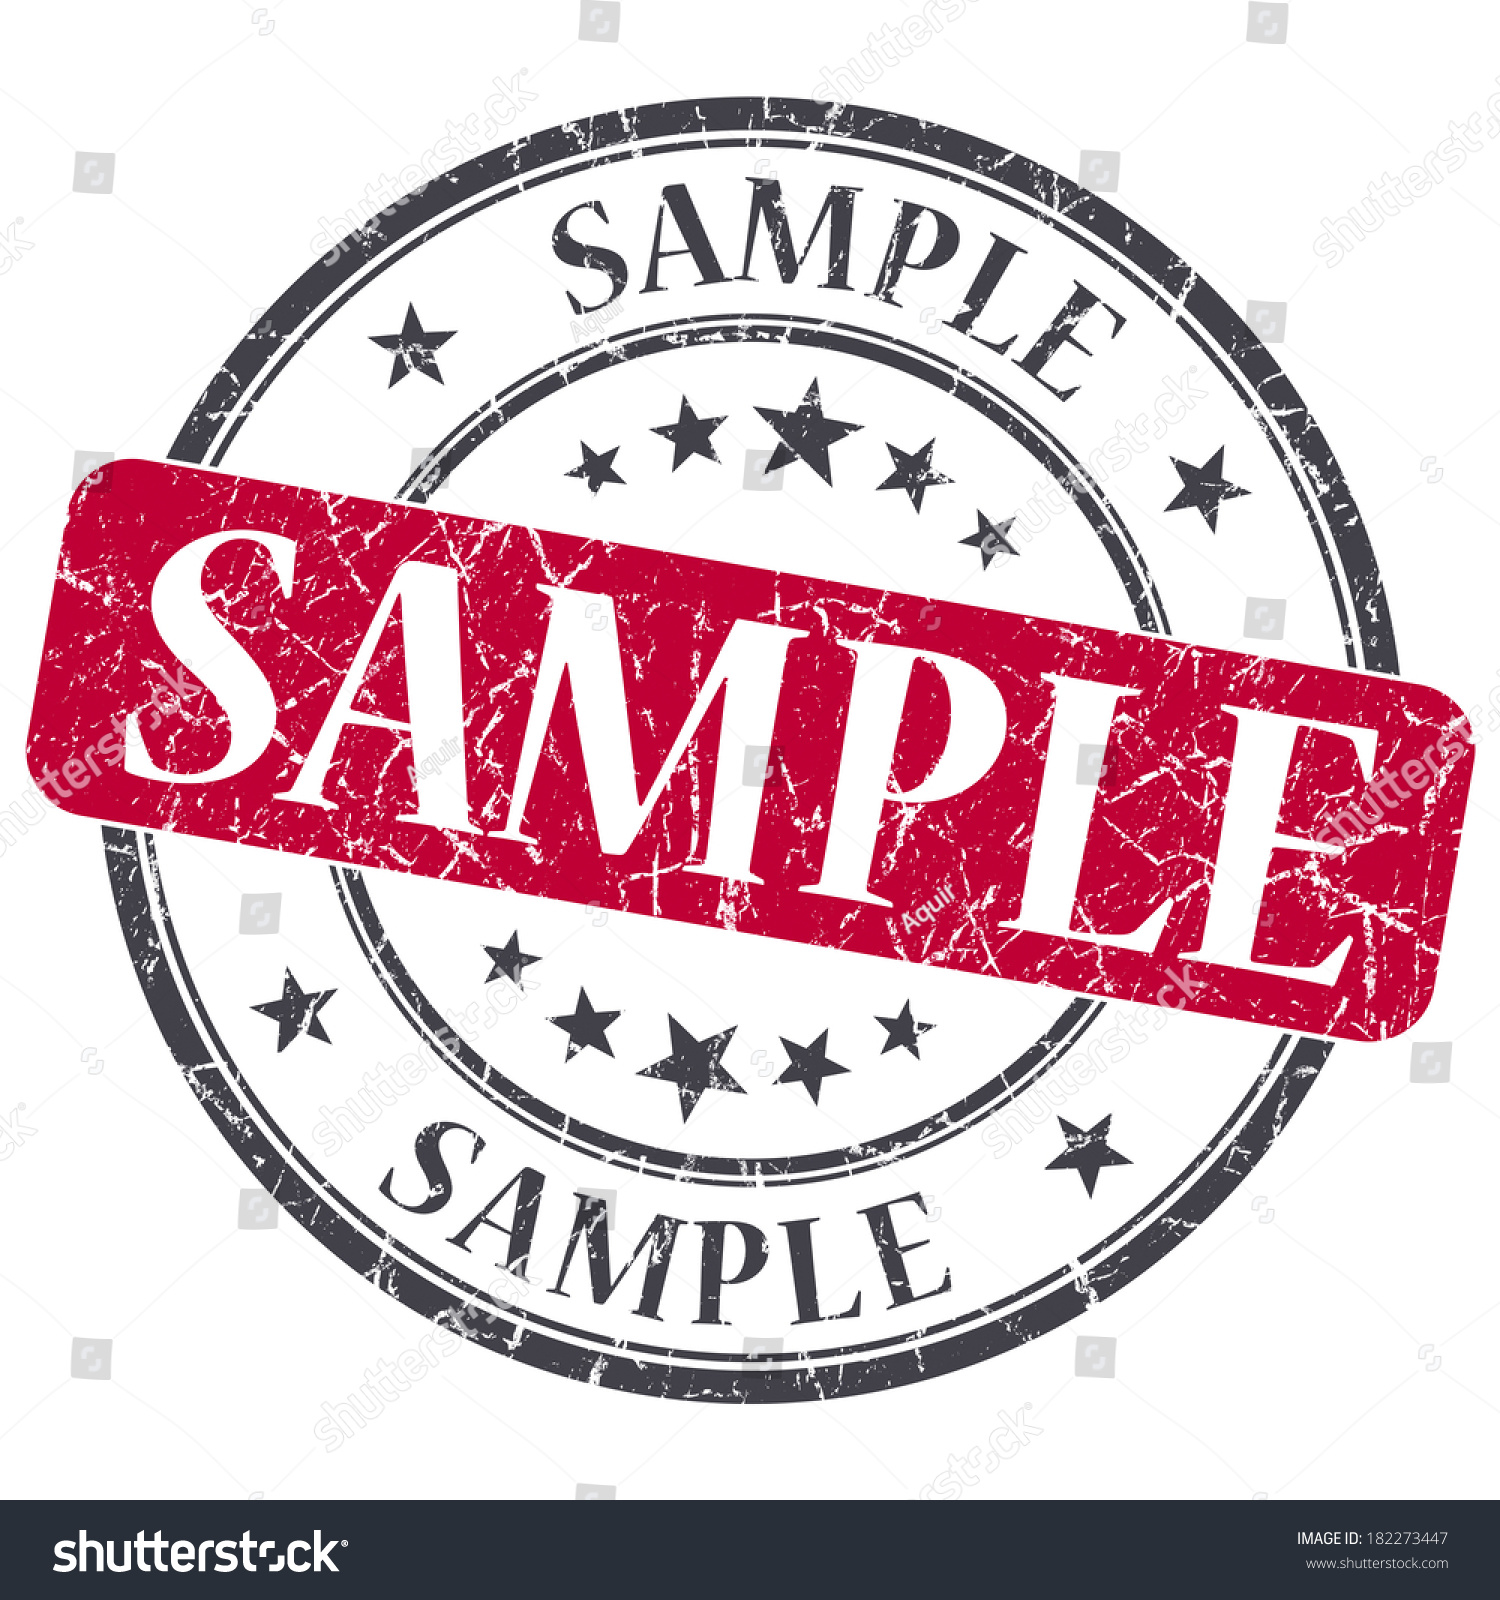 sample red grunge round stamp on stock illustration  sample red grunge round stamp on white background